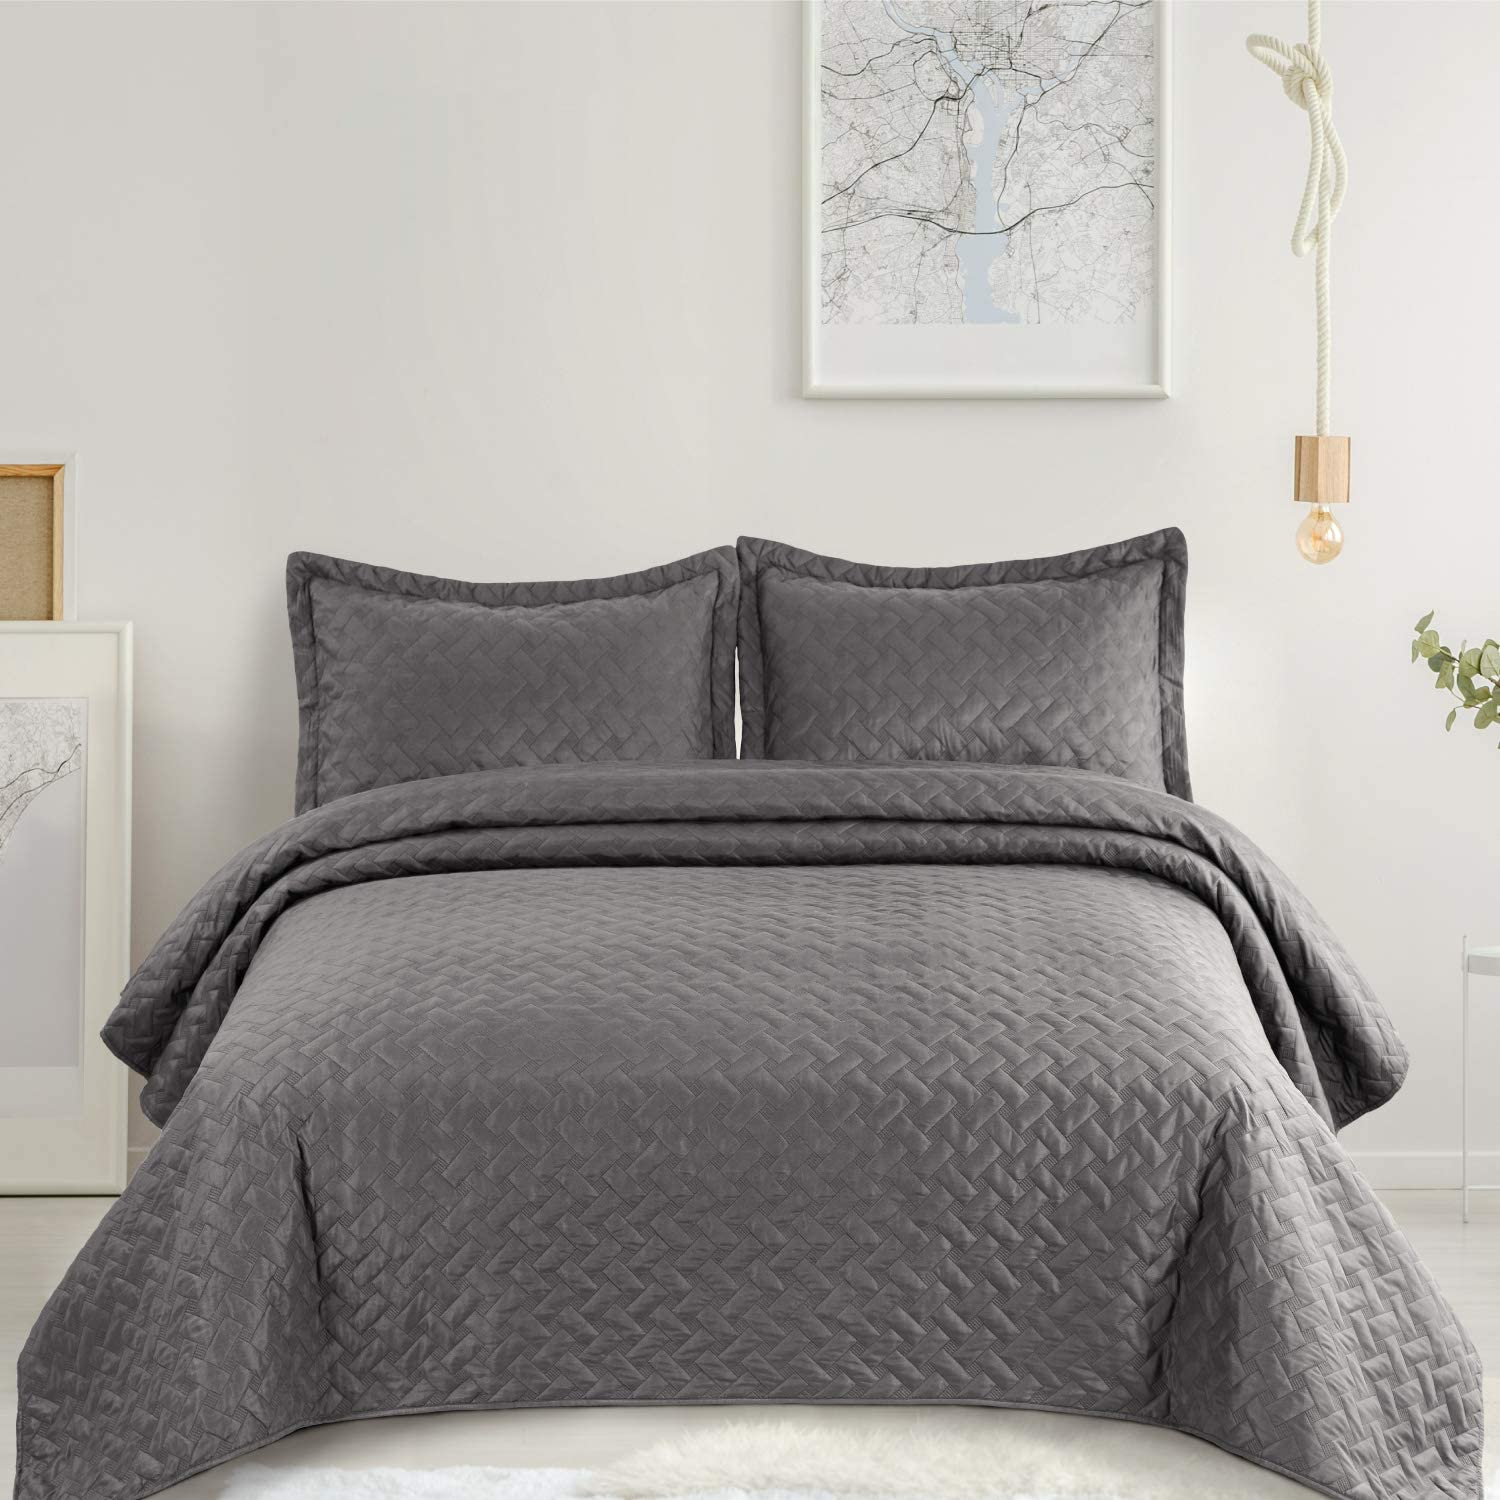 Bedspread - Soft Microfiber Lightweight Coverlet for All Season - 3 Pieces Includes 1 Quilt, 2 Shams